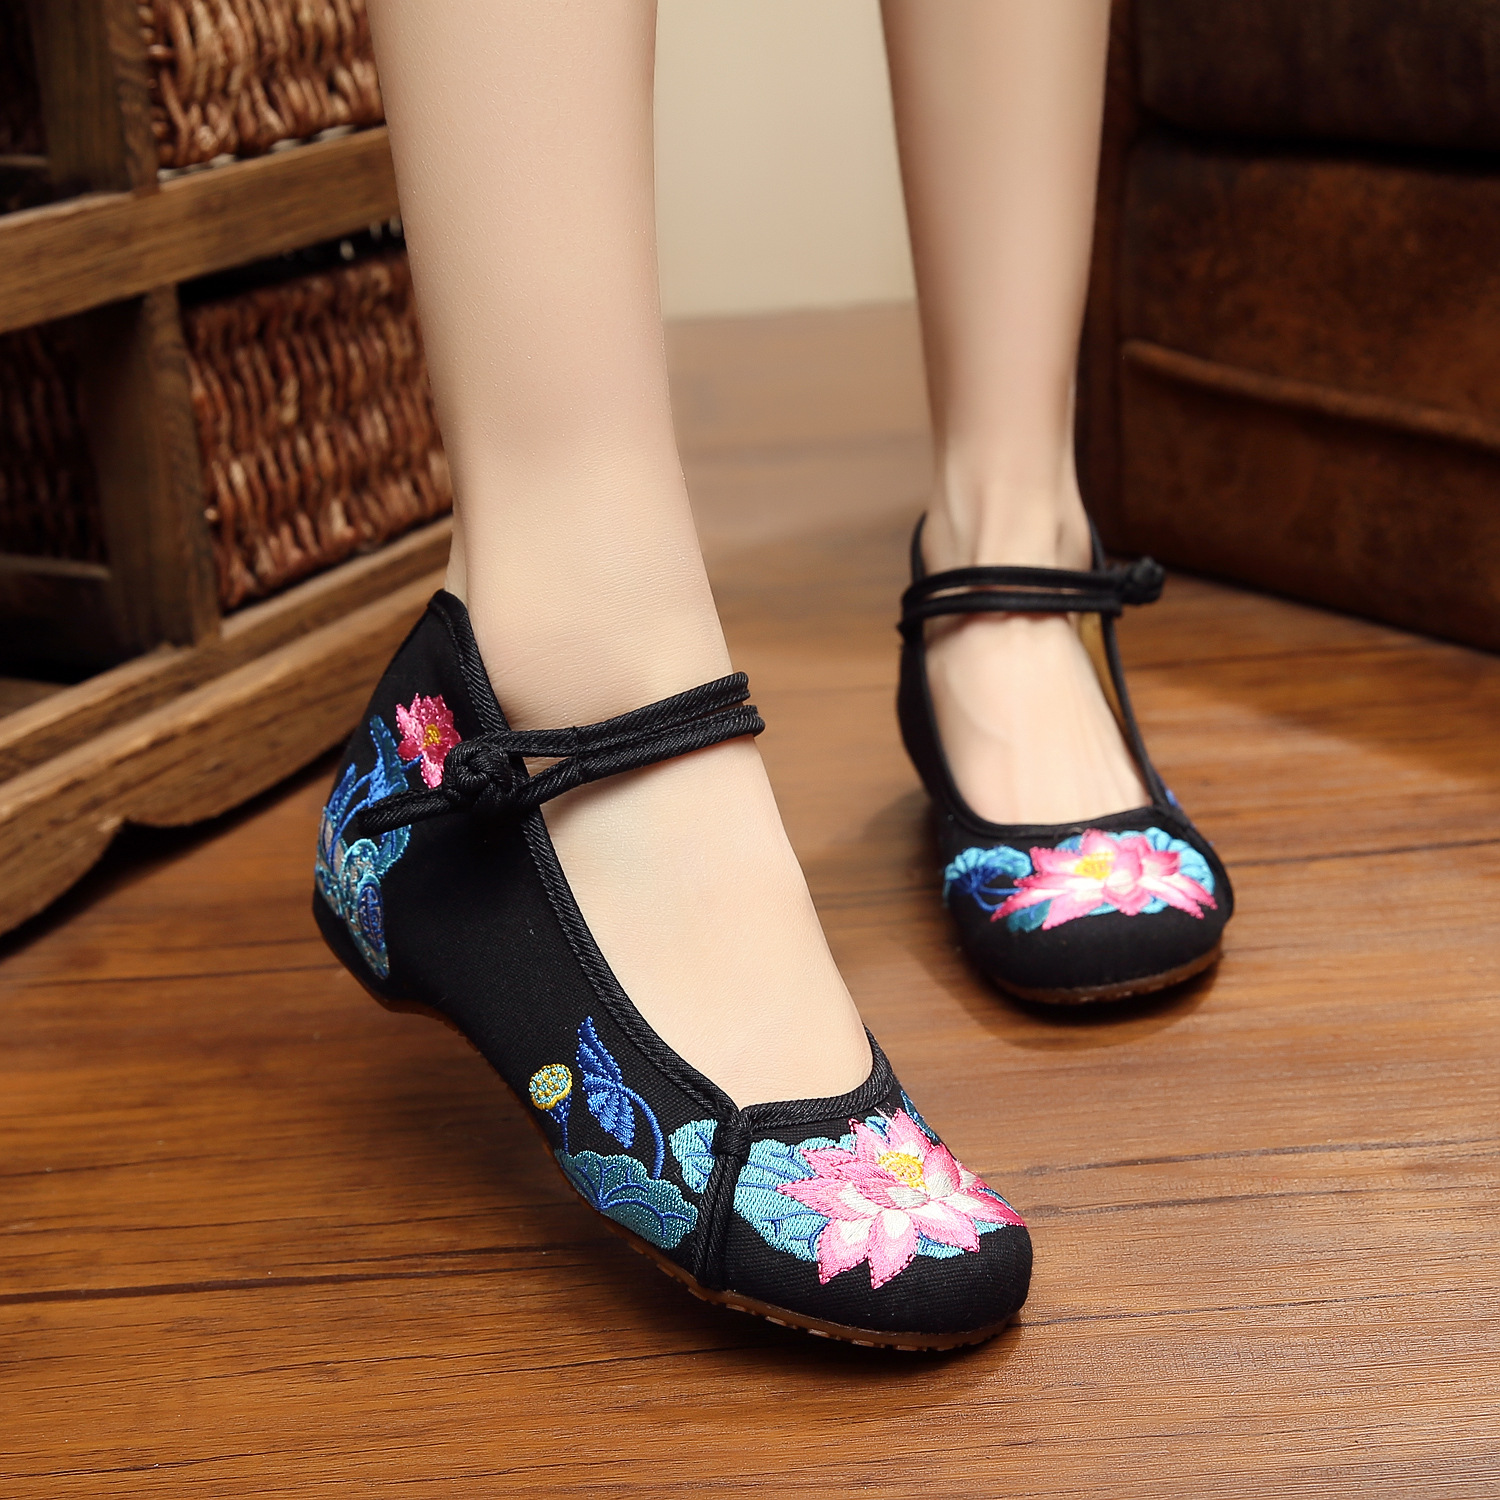 Hot sale Moonlight Lotus flowers delicate embroidery flats shoes for women fashion ladies canvas shoes dance woman shoes<br><br>Aliexpress